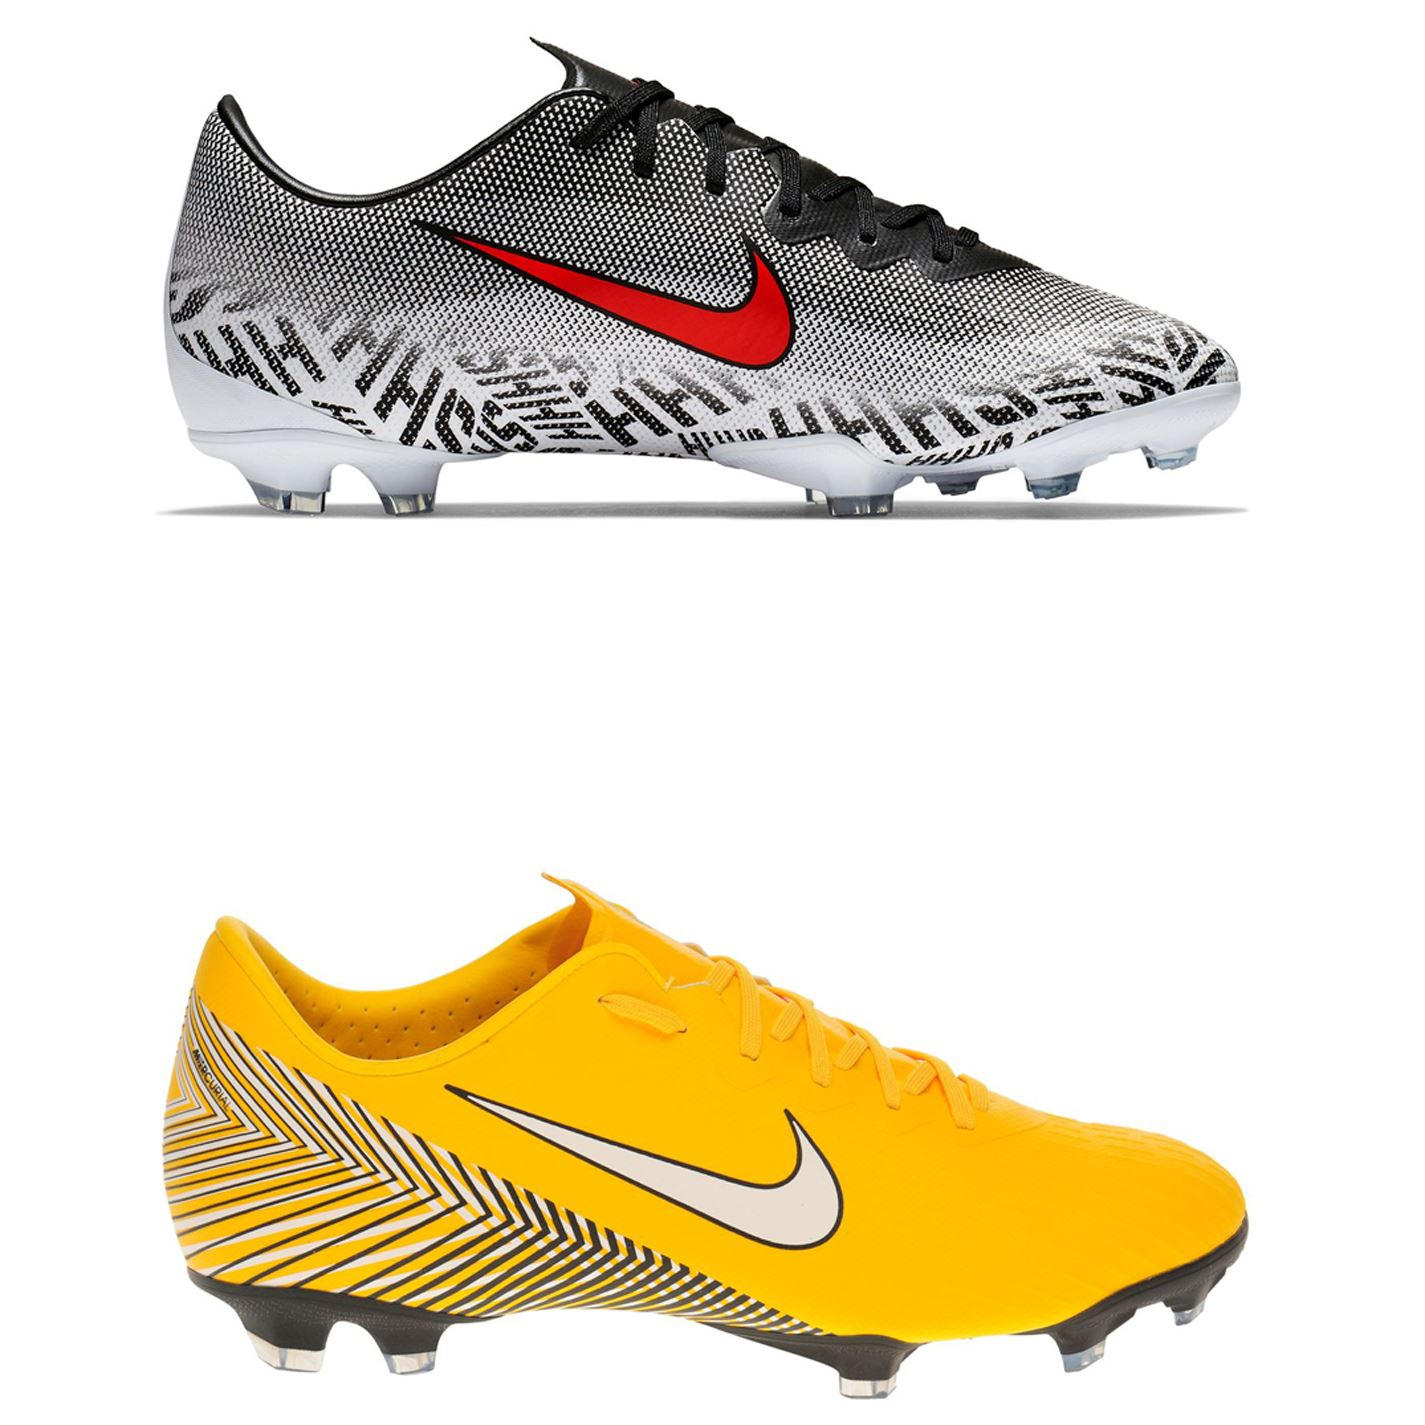 Détails sur Nike Mercurial Vapor Elite Neymar Sol Ferme Football Bottes Juniors Football